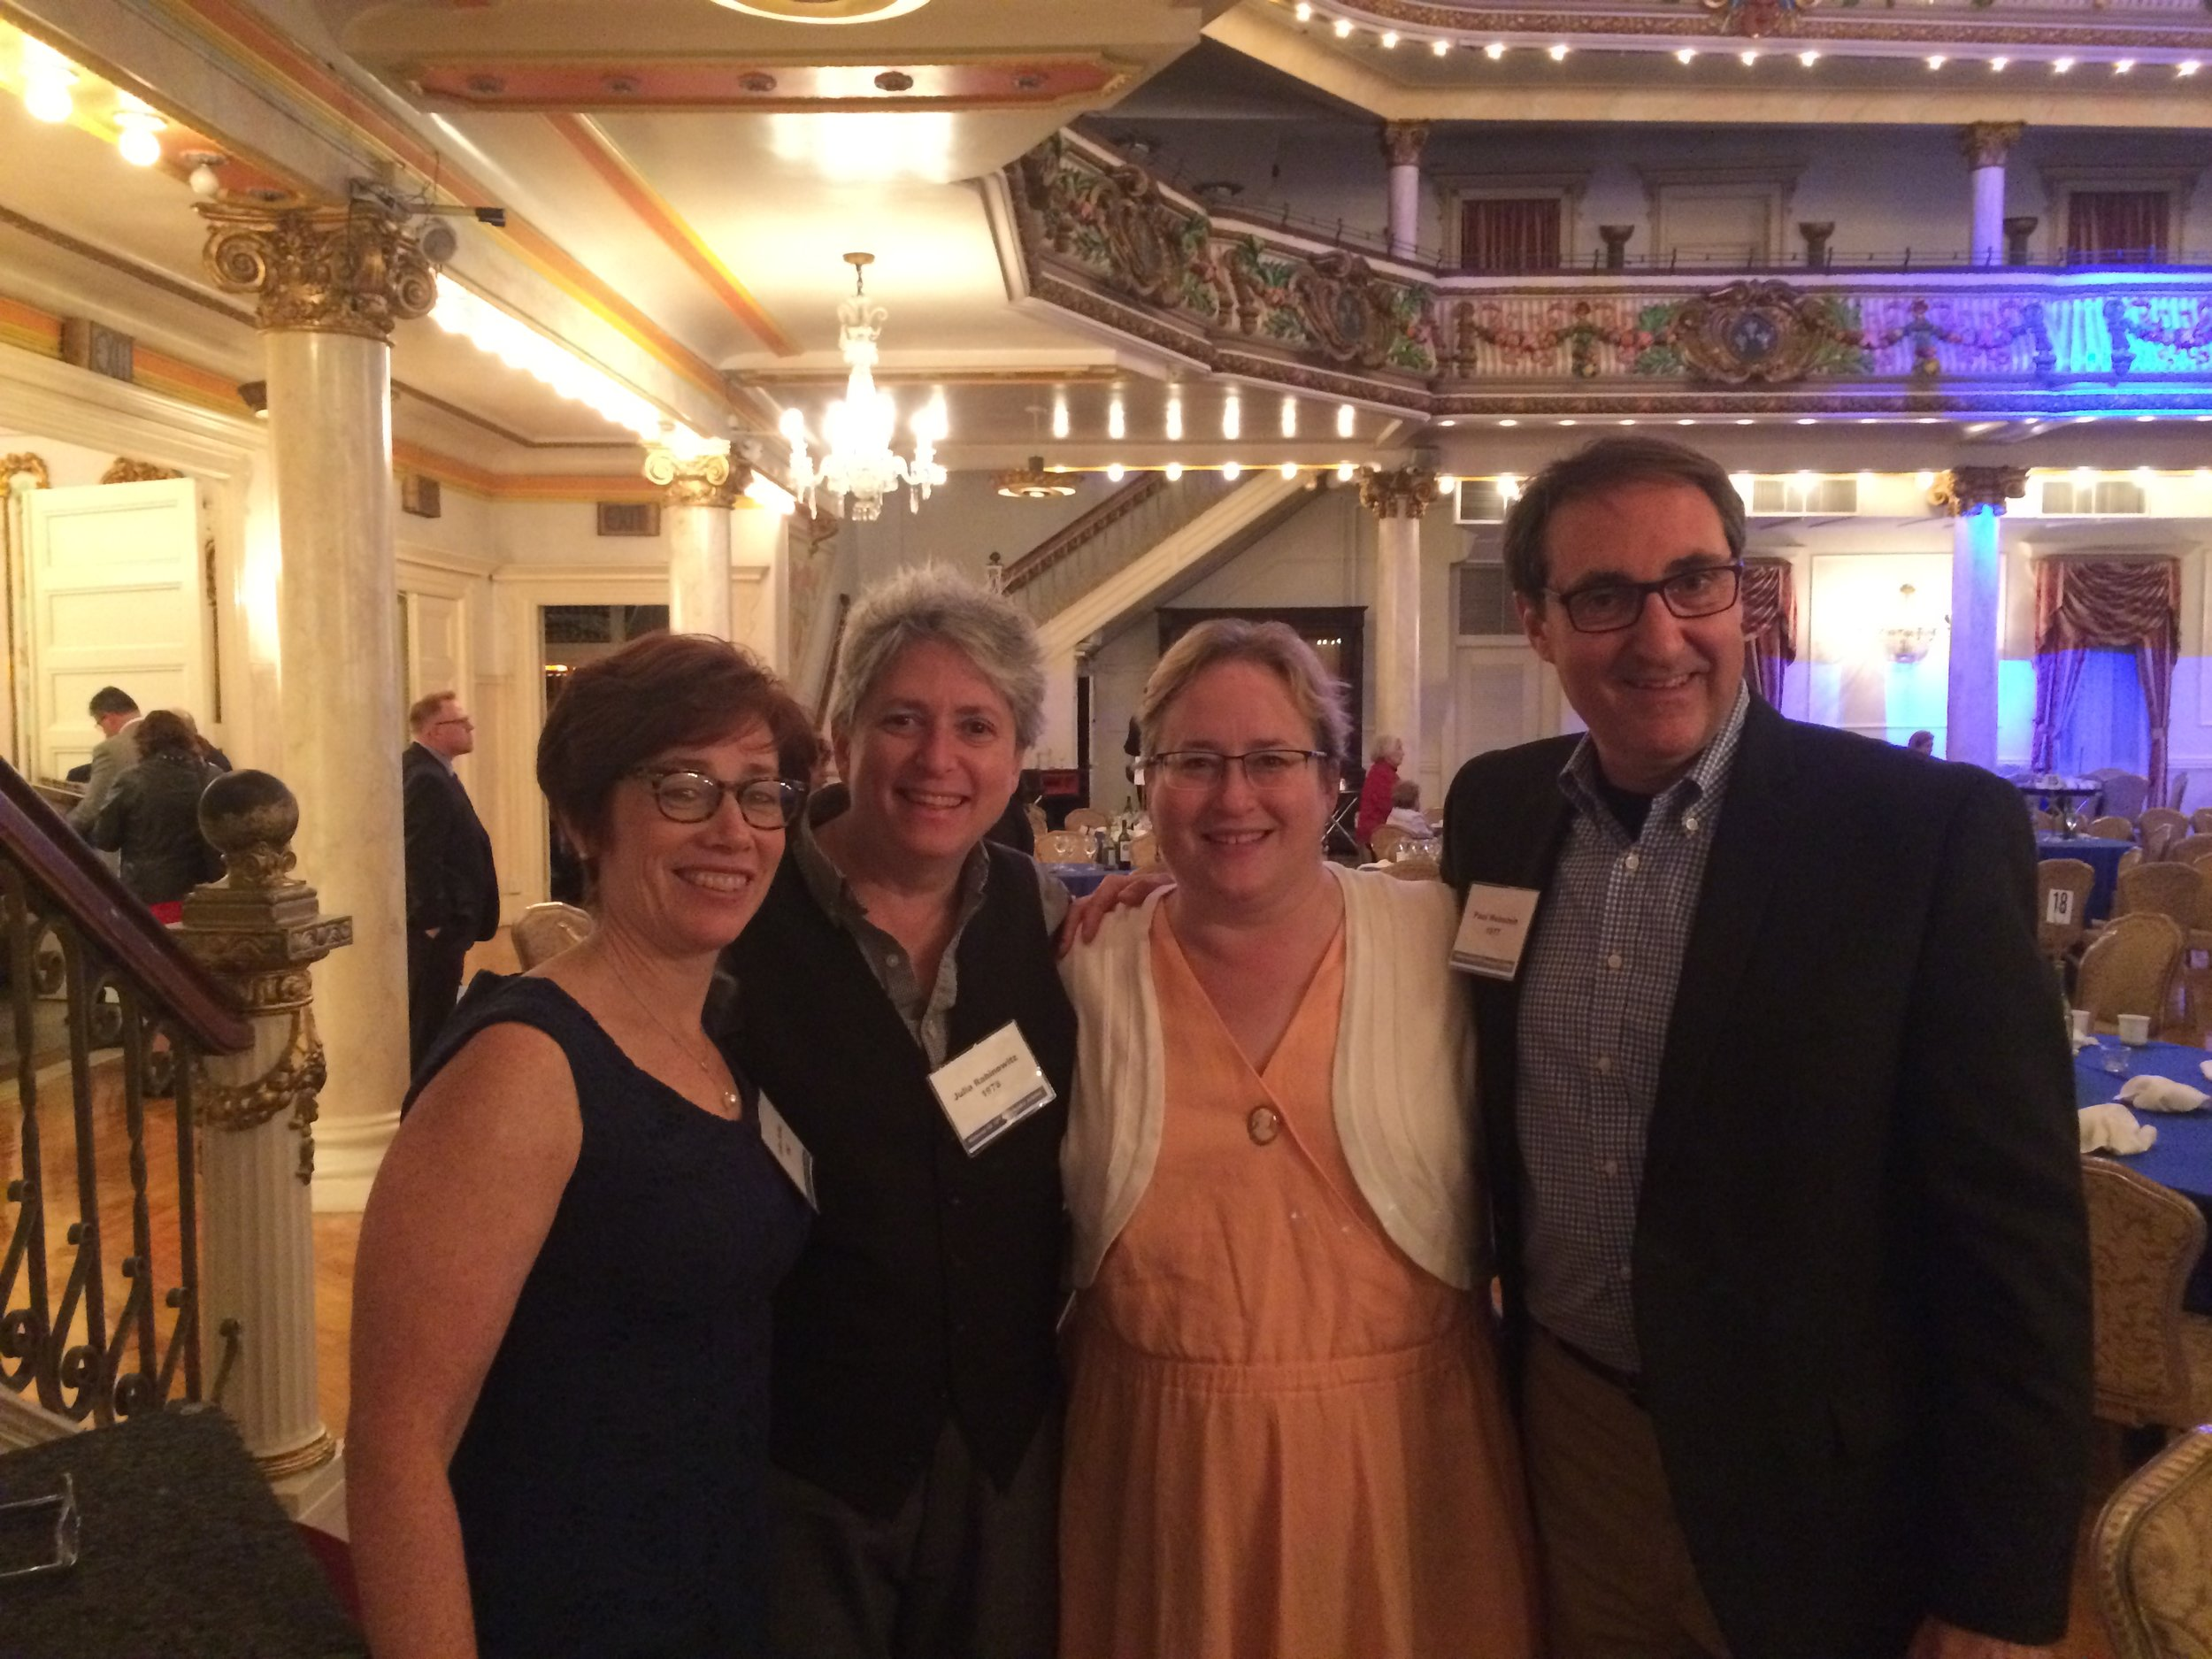 Felice Farber '82, Julia Rabinowitz '78, Wendy Guida '83, Paul Weinstein '77